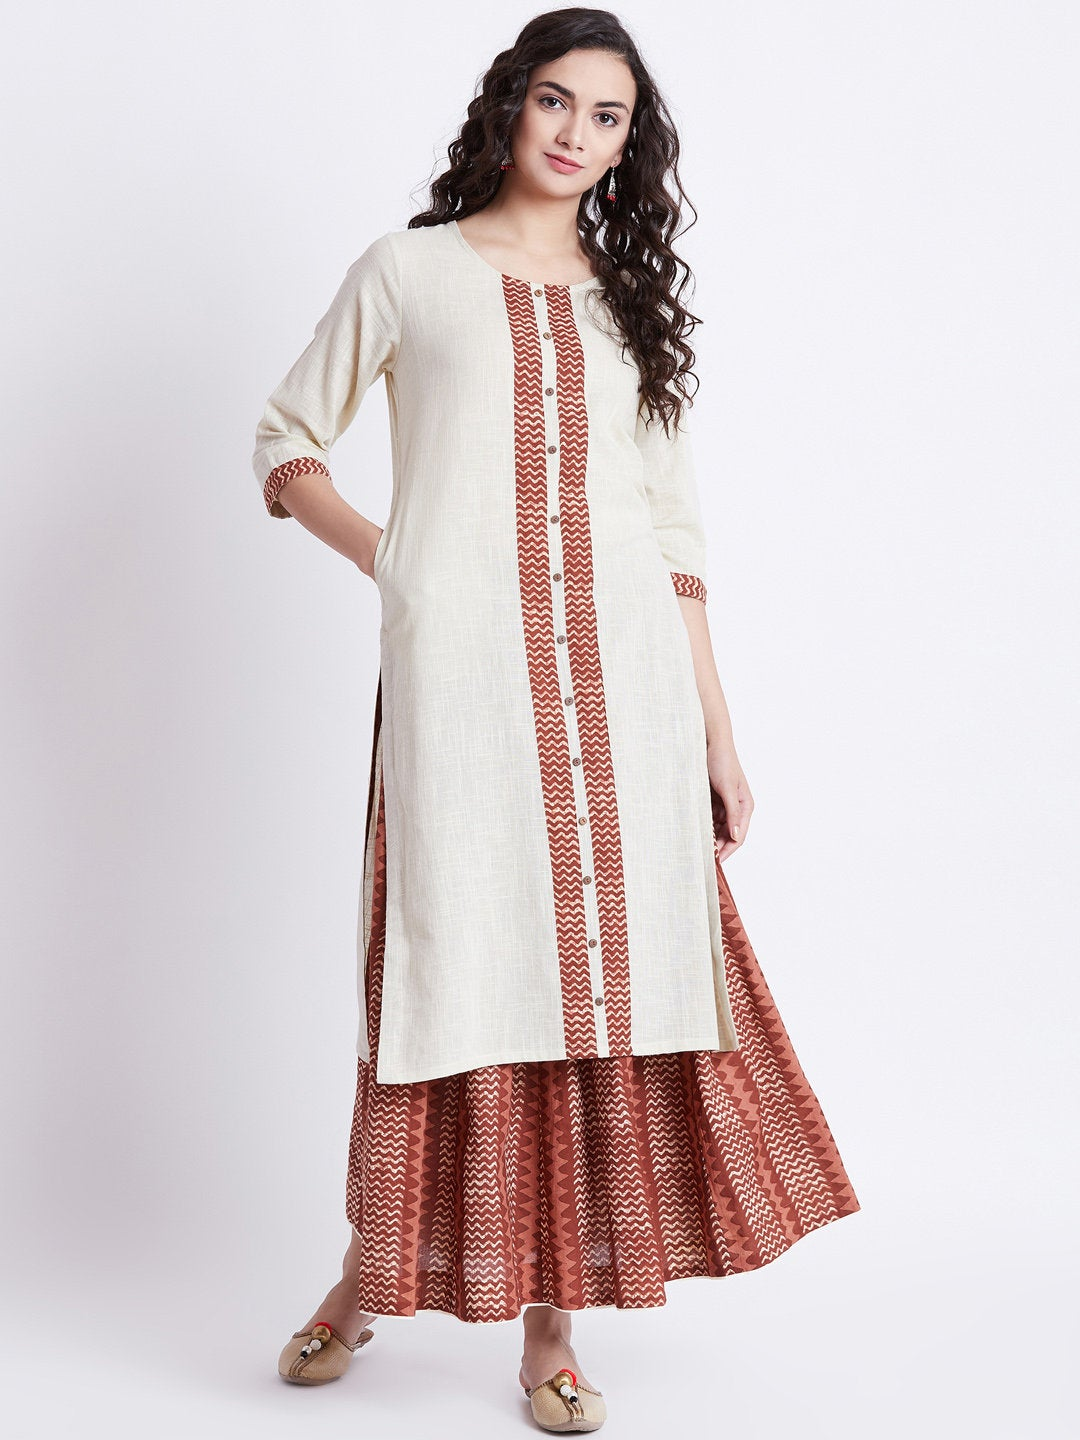 Hand block printed skirt with off-white long cotton kurta with print detailing on front & sleeves